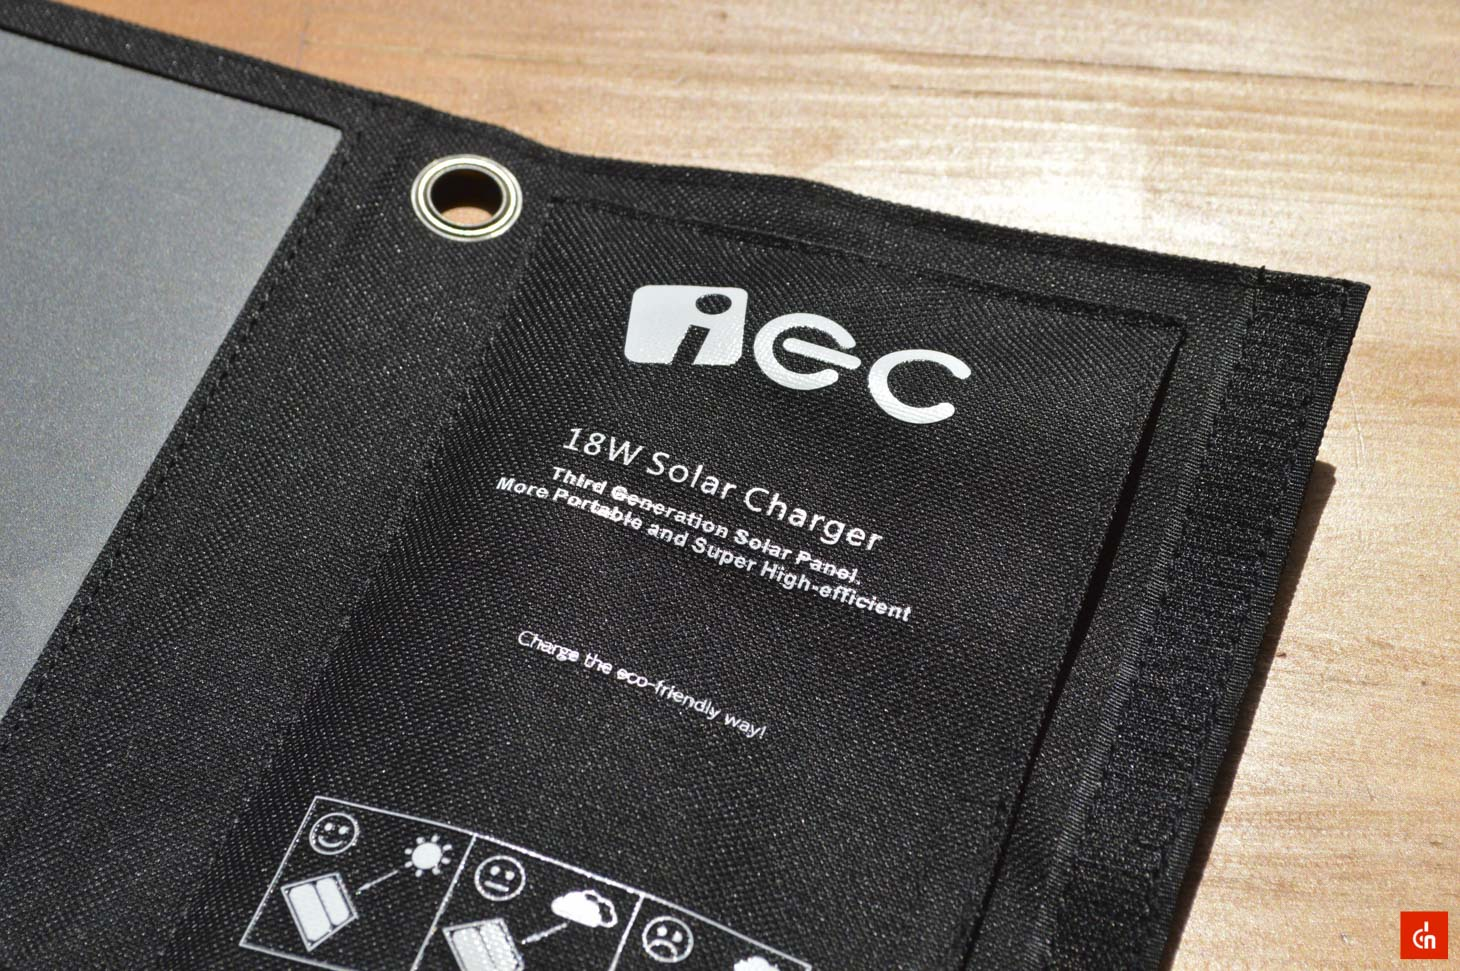 010_20160618_iec-solar-charger